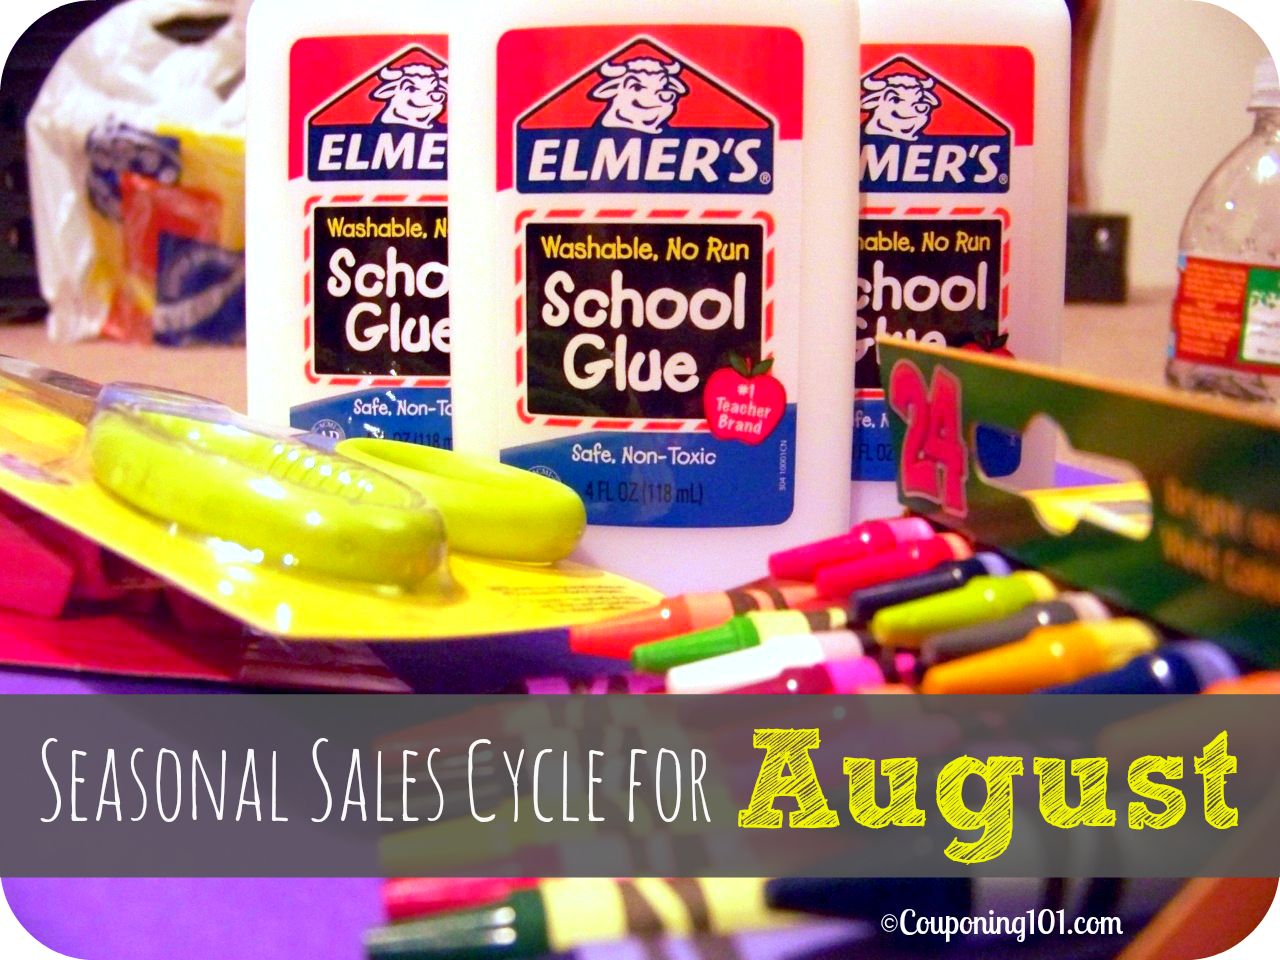 Wondering what products are on sale this month? Here is a list of items you can find at their rock-bottom prices during the month of August. Lots of lunchbox goodies, school supplies, and tons of tasty produce!